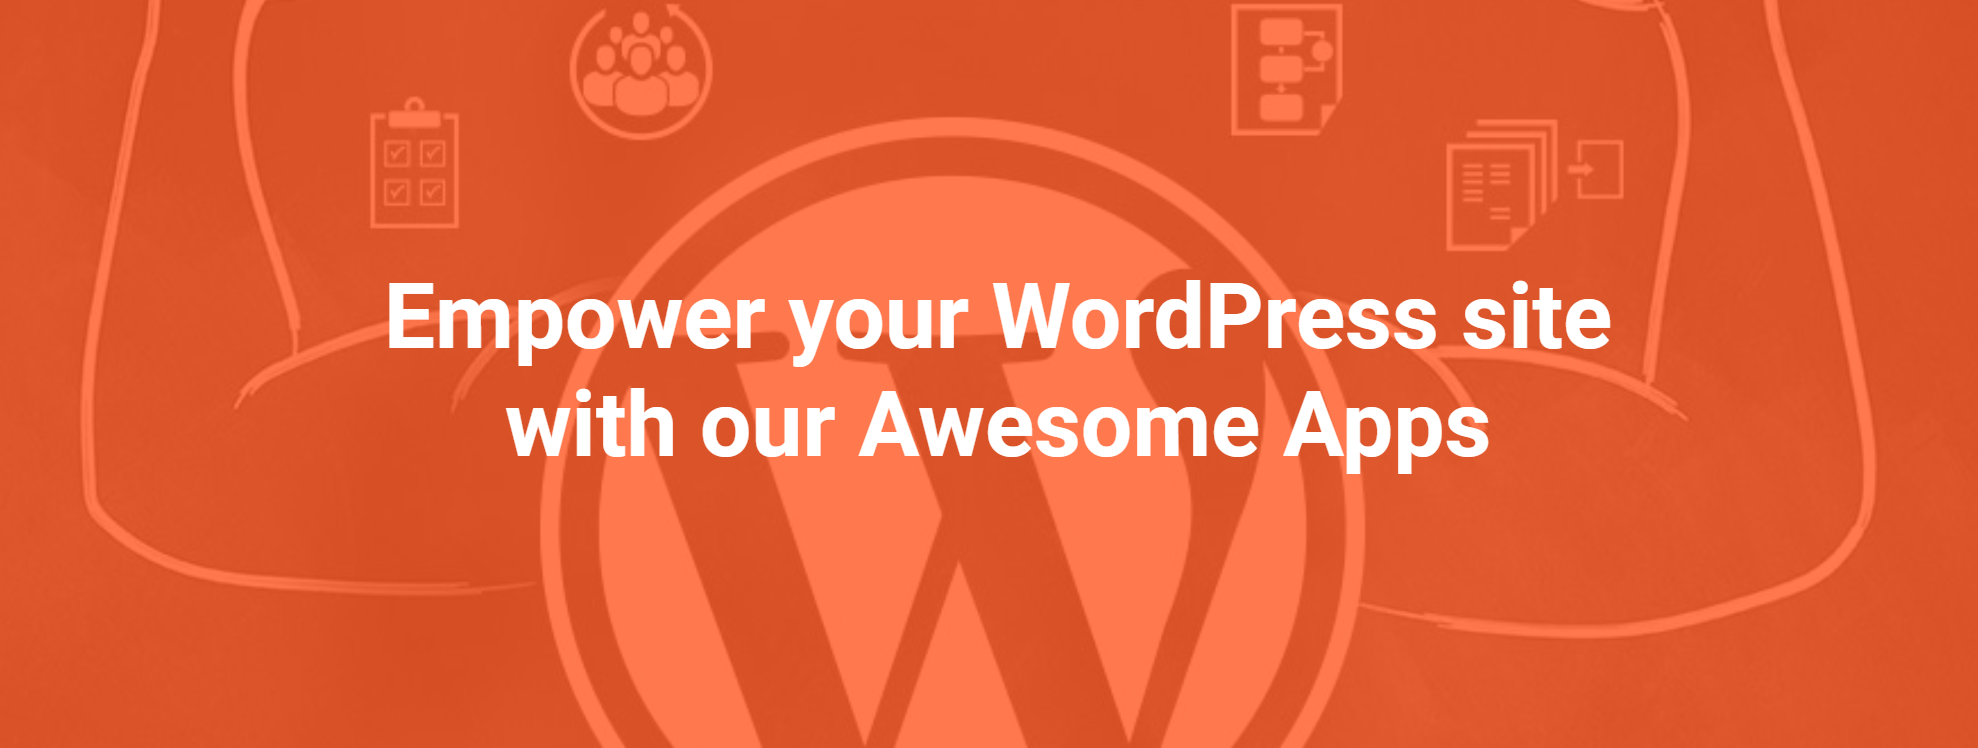 Awesome Apps - Do more with your WordPress website